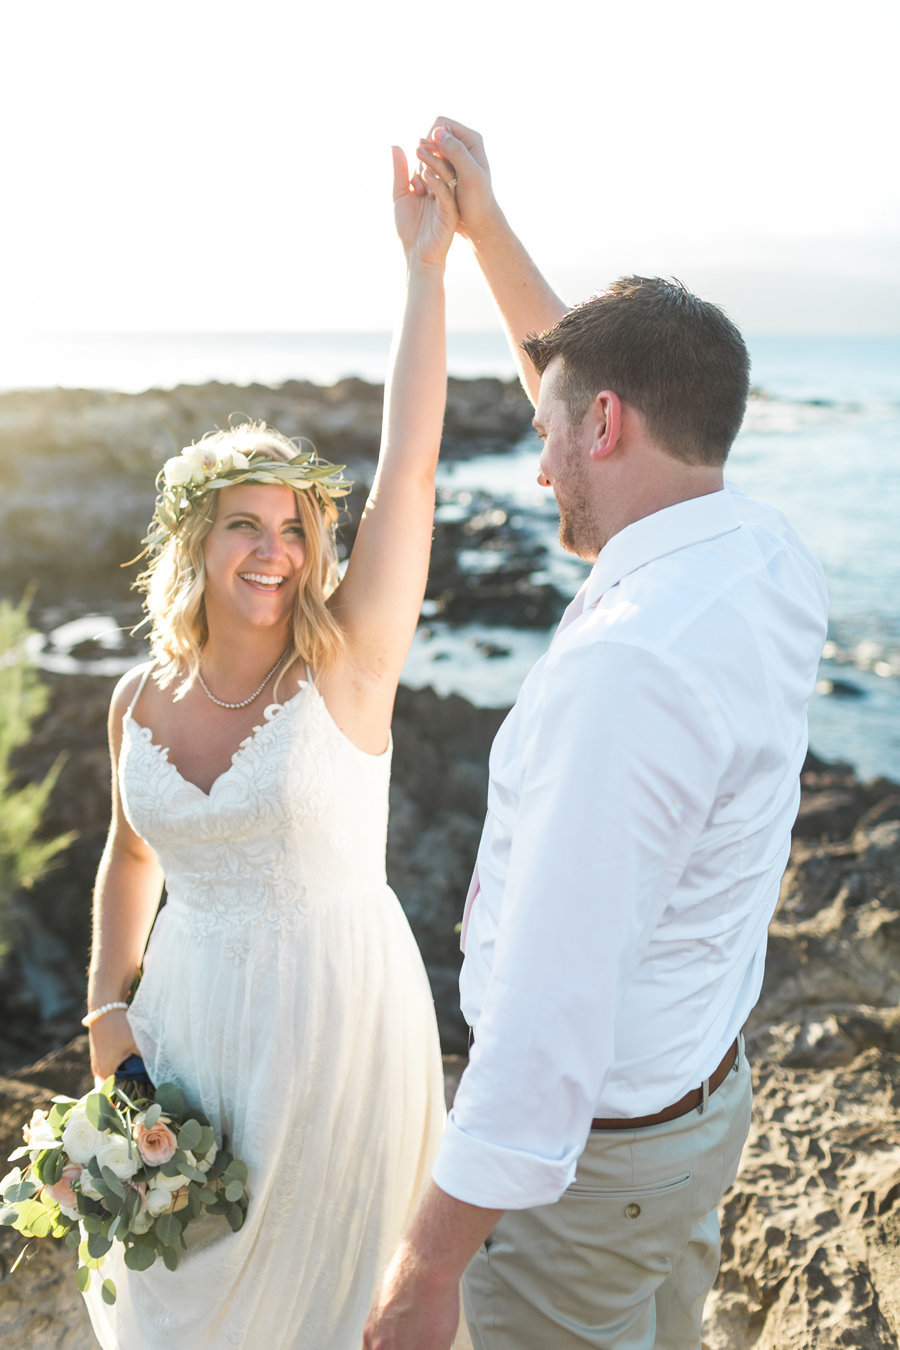 The-Ritz-Carlton-Kapalua-Maui-Wedding-Caitlin-Cathey-Photo-076